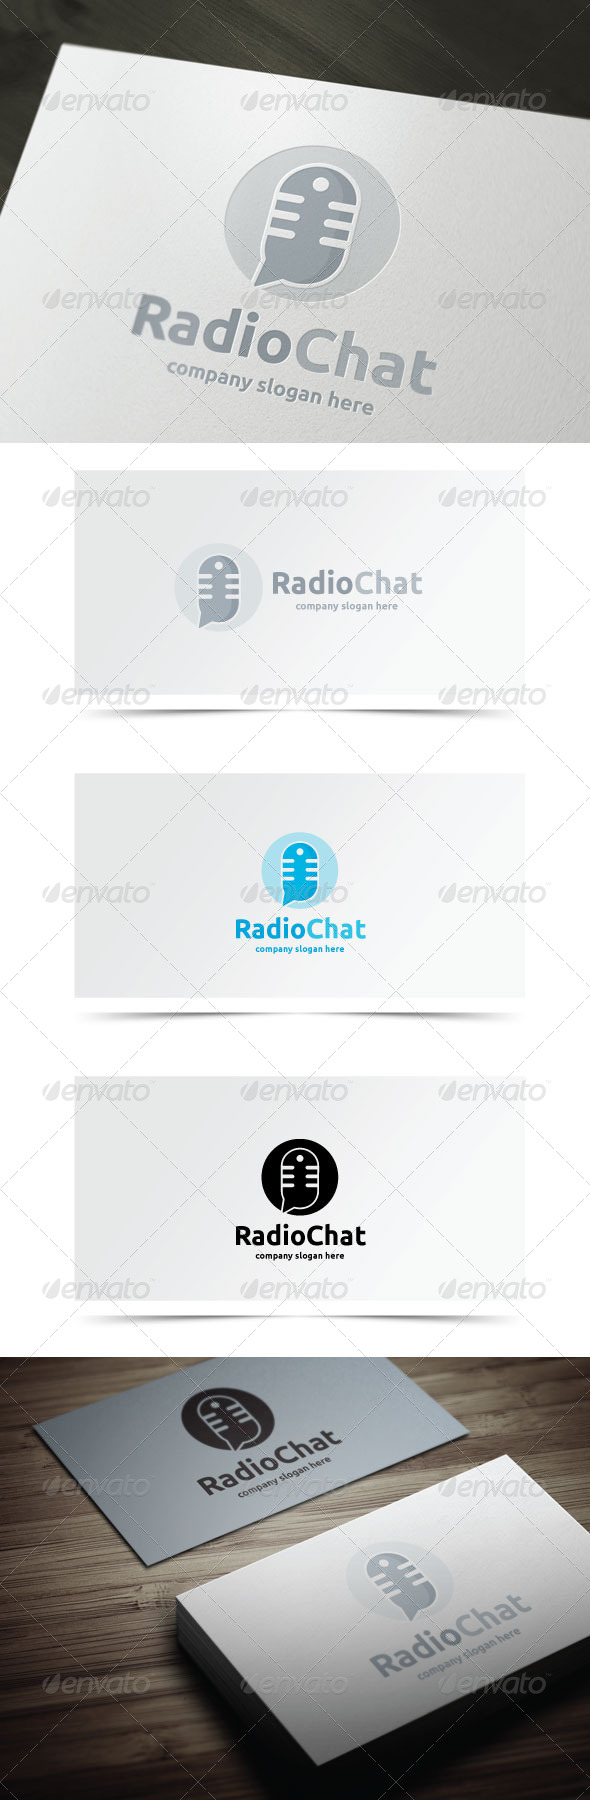 GraphicRiver Radio Chat 8436119